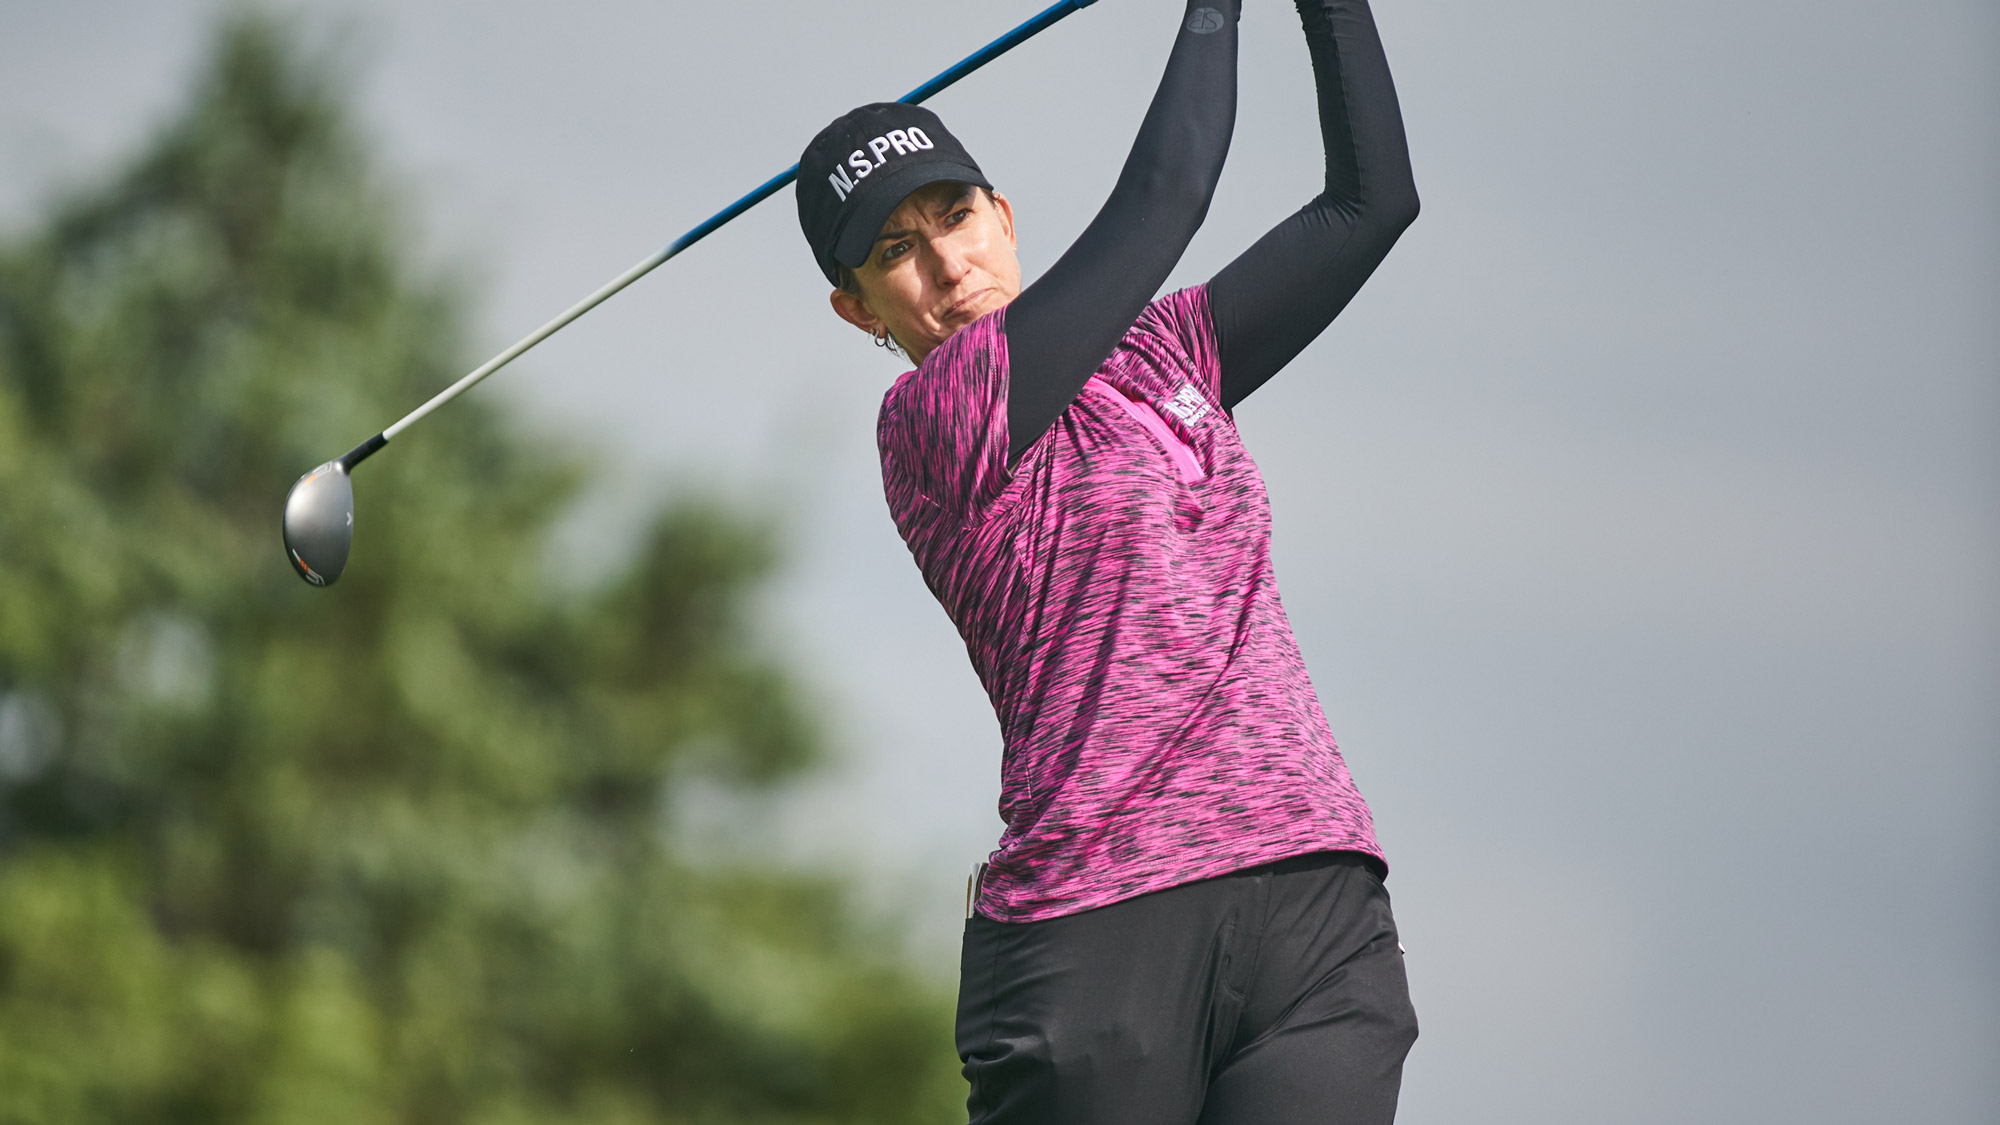 Karrie Webb is Making Her 2nd Start of the Year in Texas